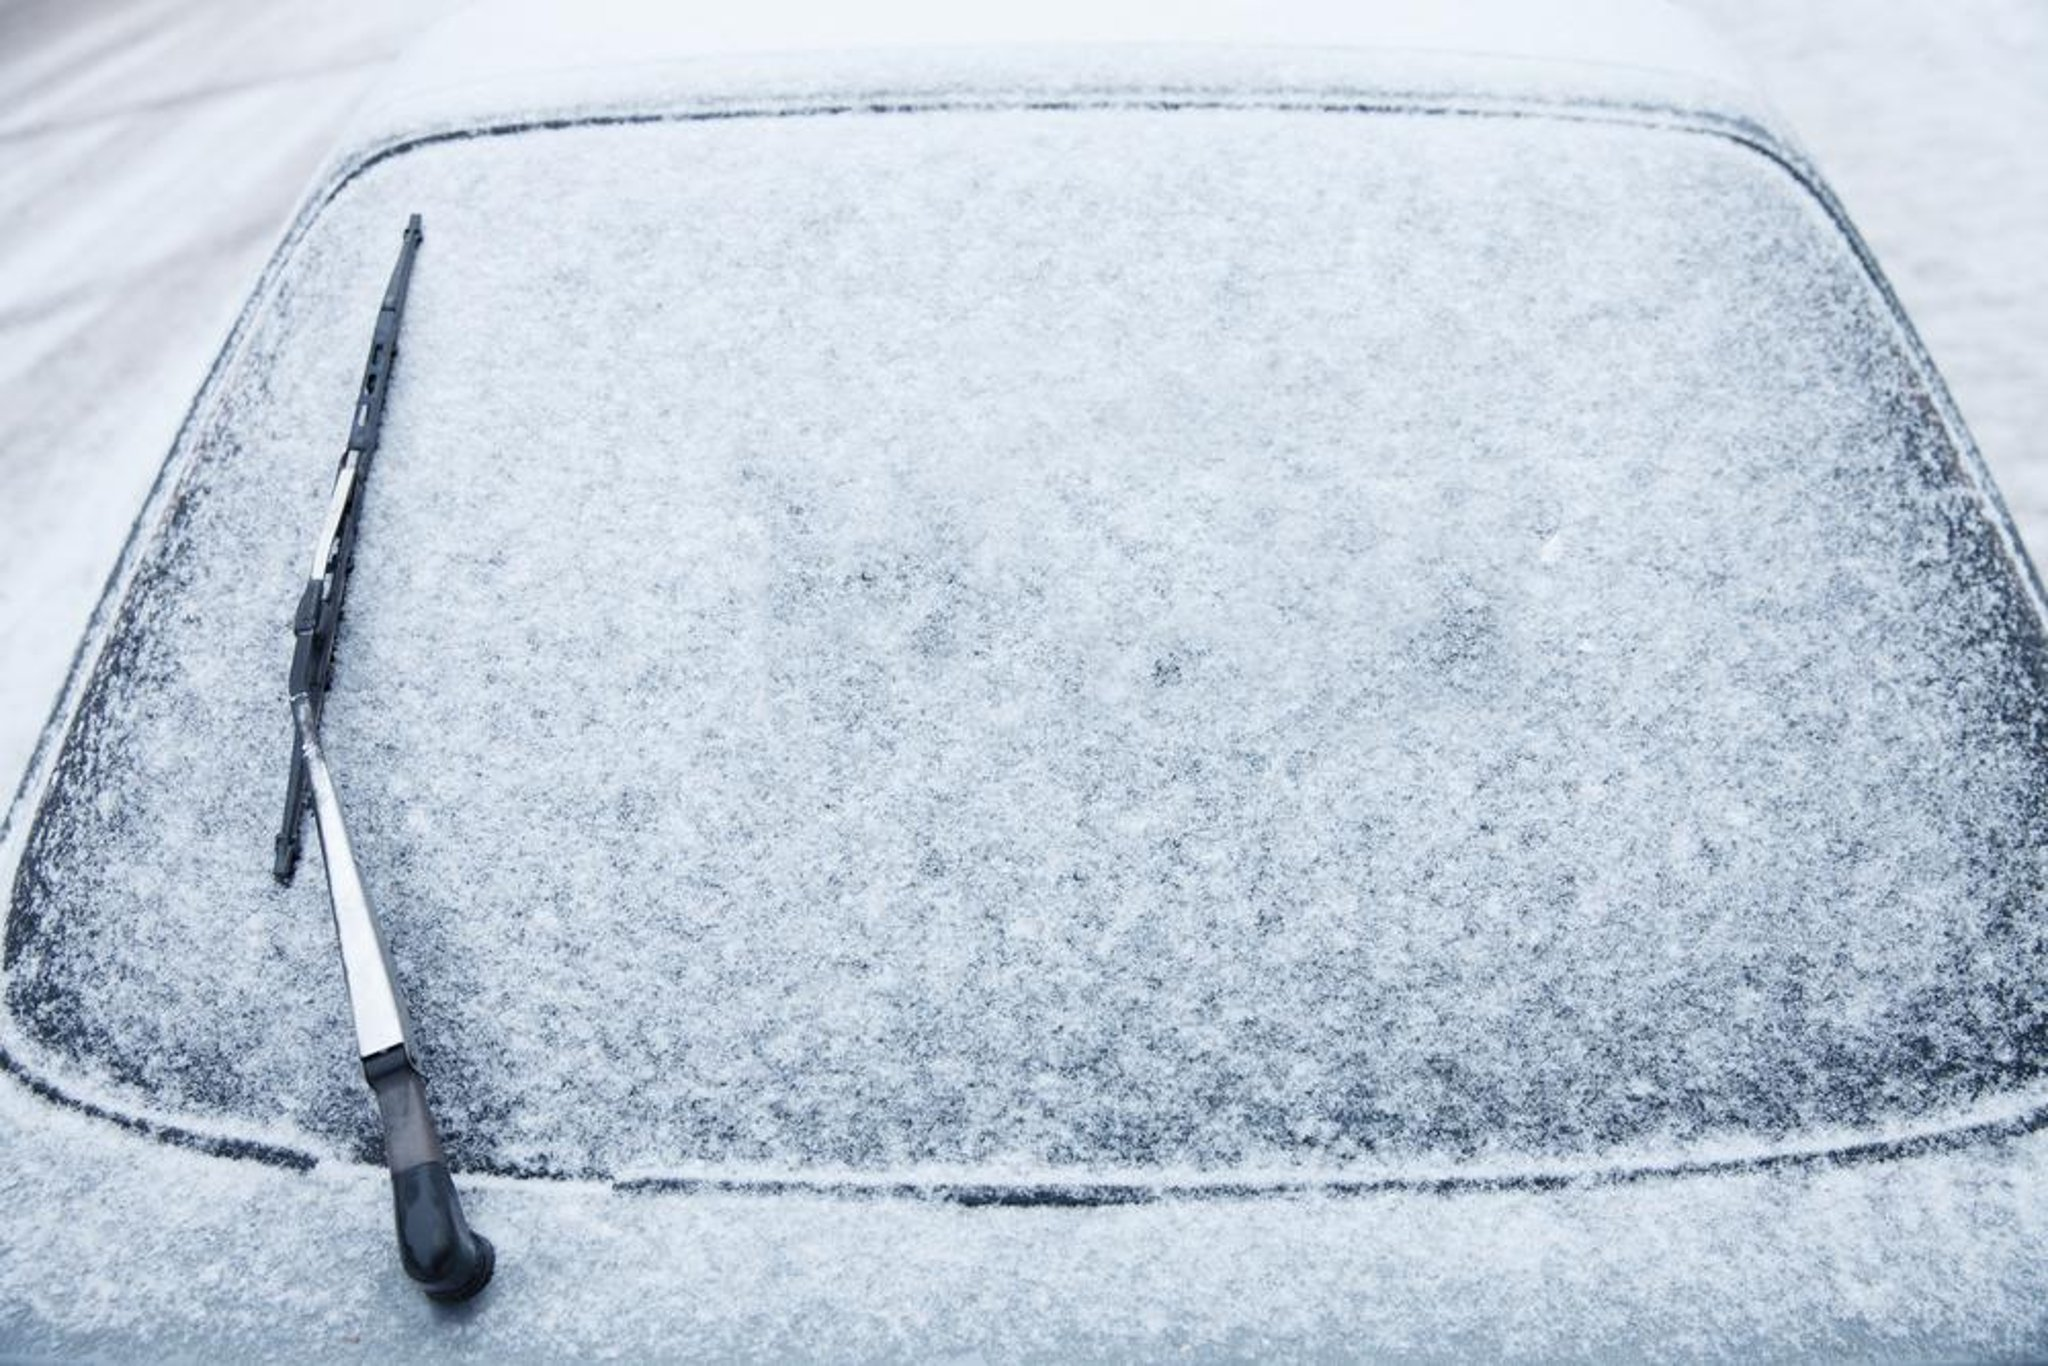 Former NASA engineer reveals quickest way to defrost windscreens